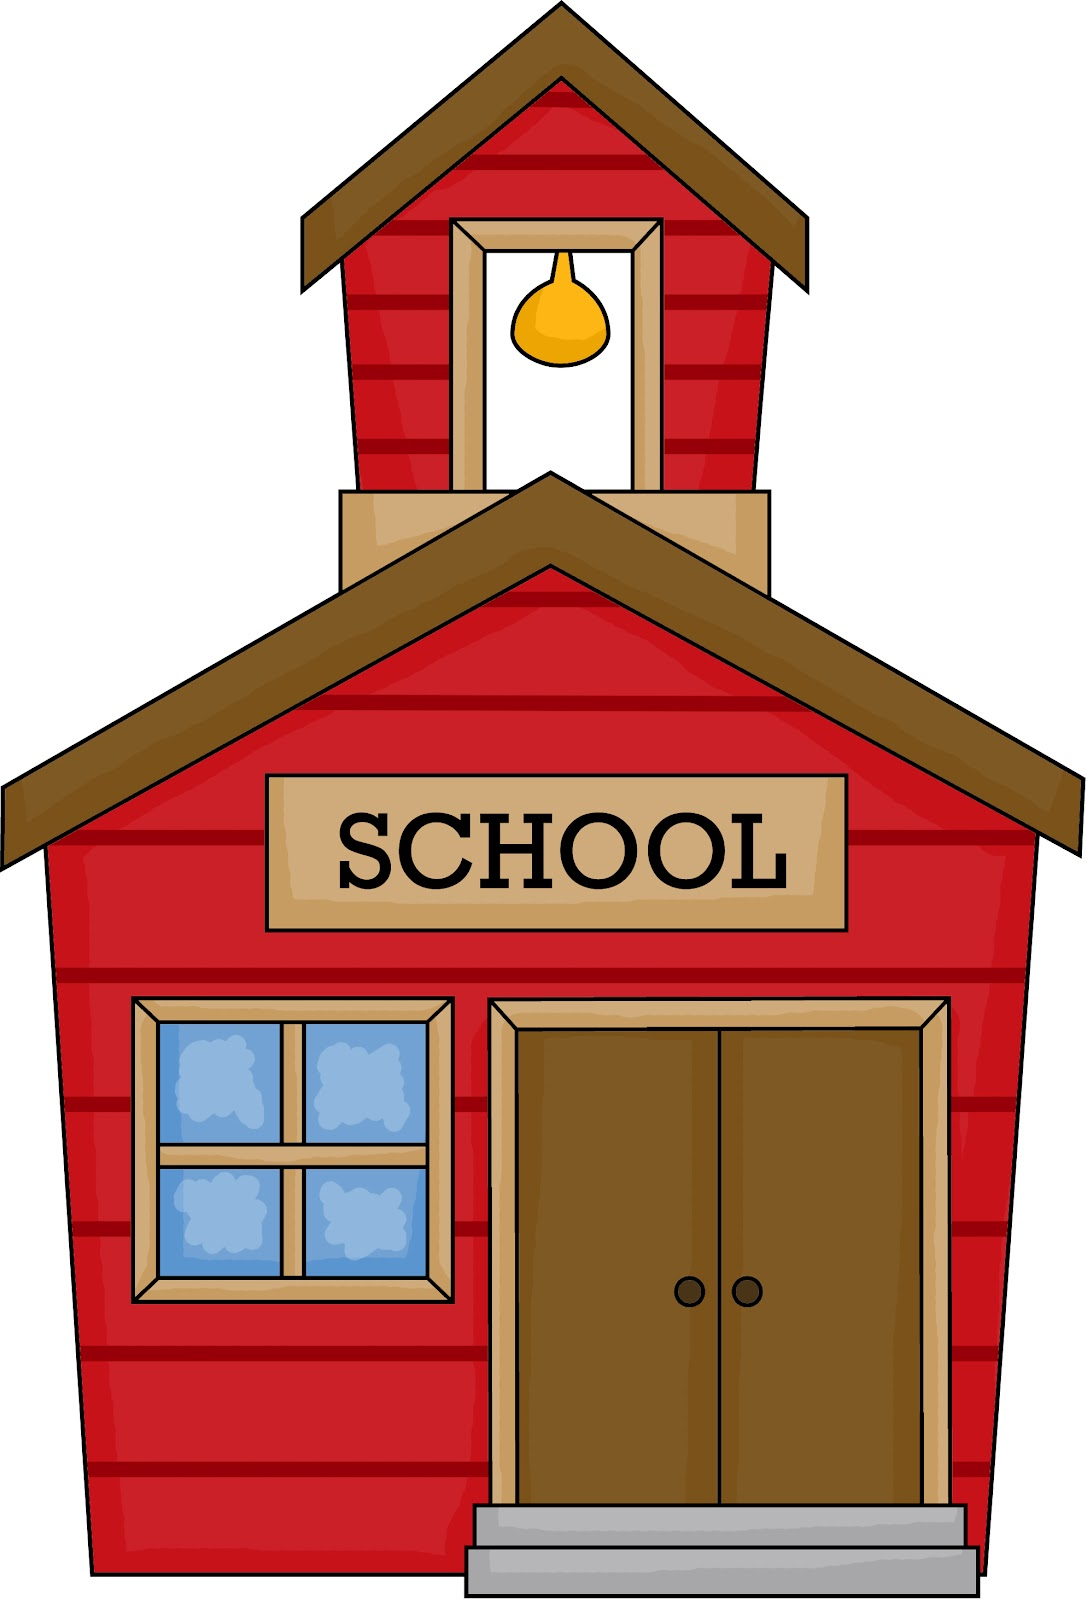 School House Graphics - ClipArt Best